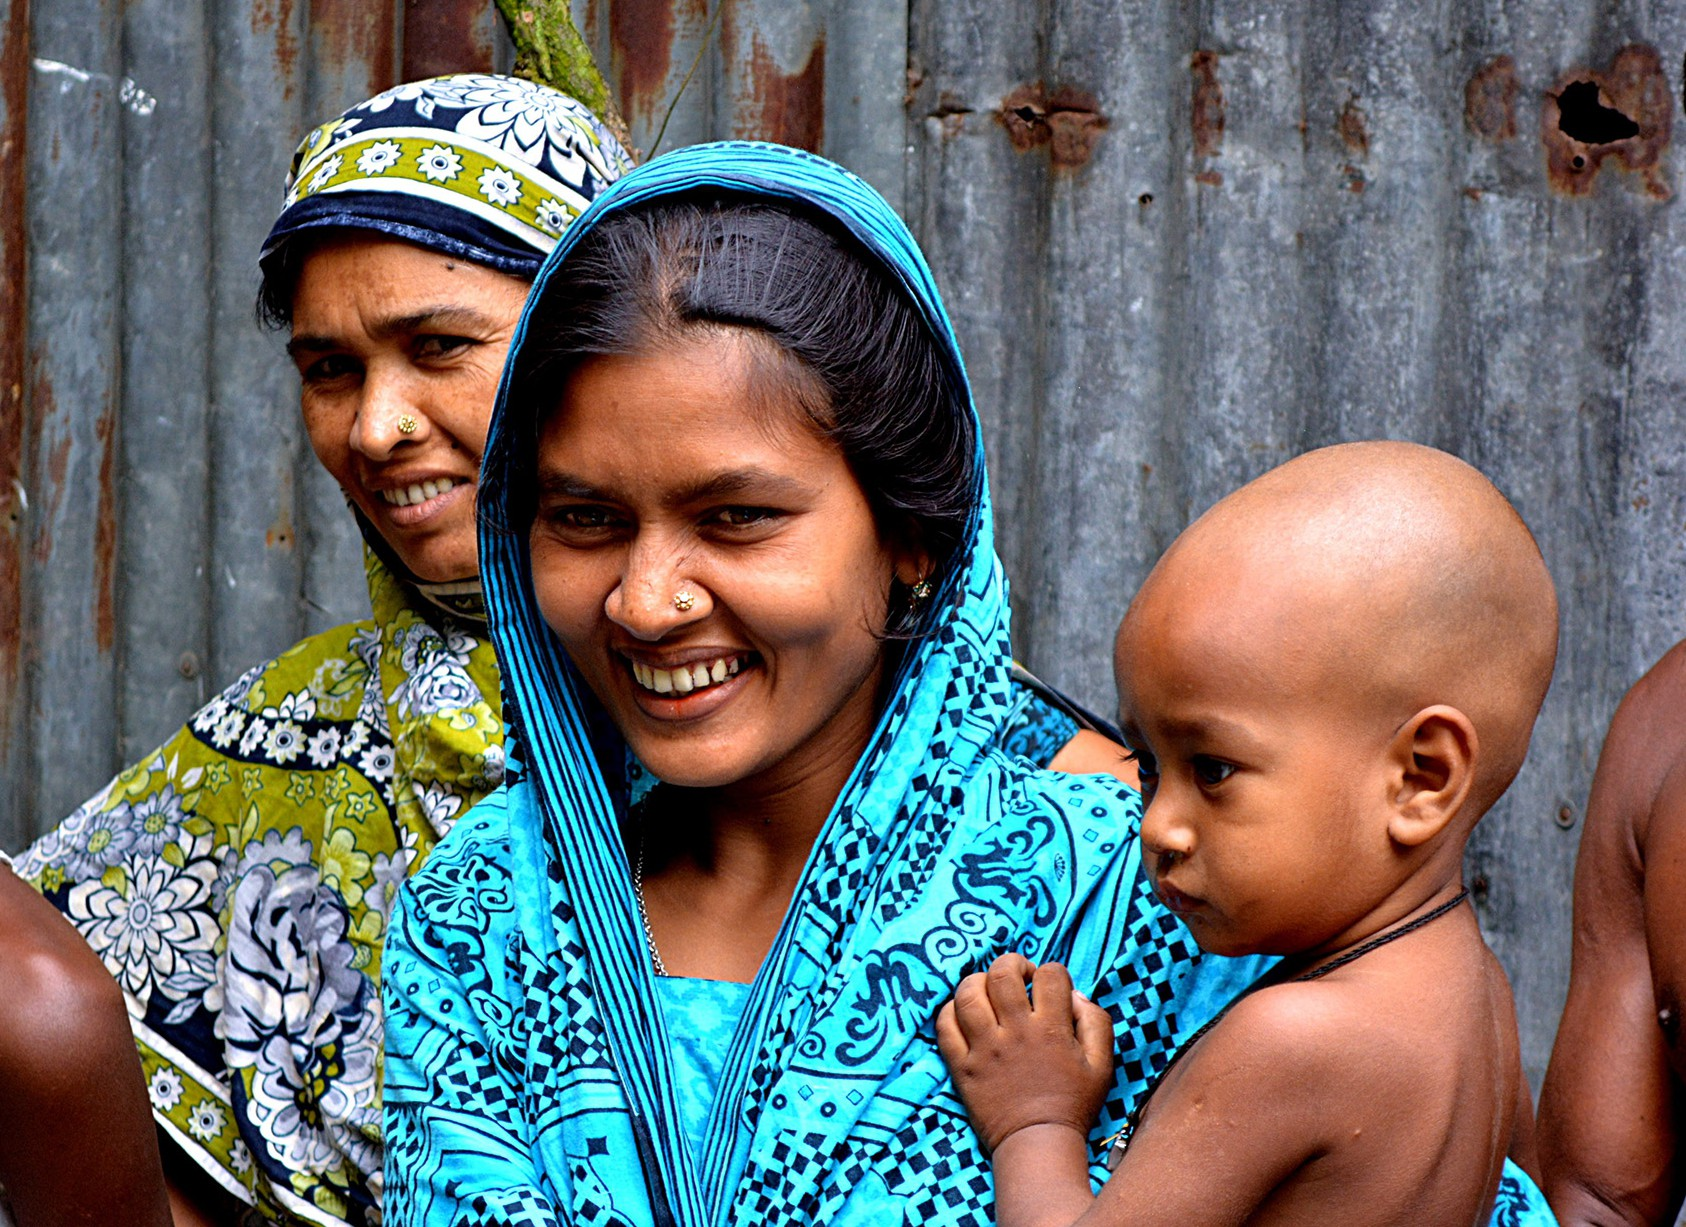 A woman and her family in Bangladesh